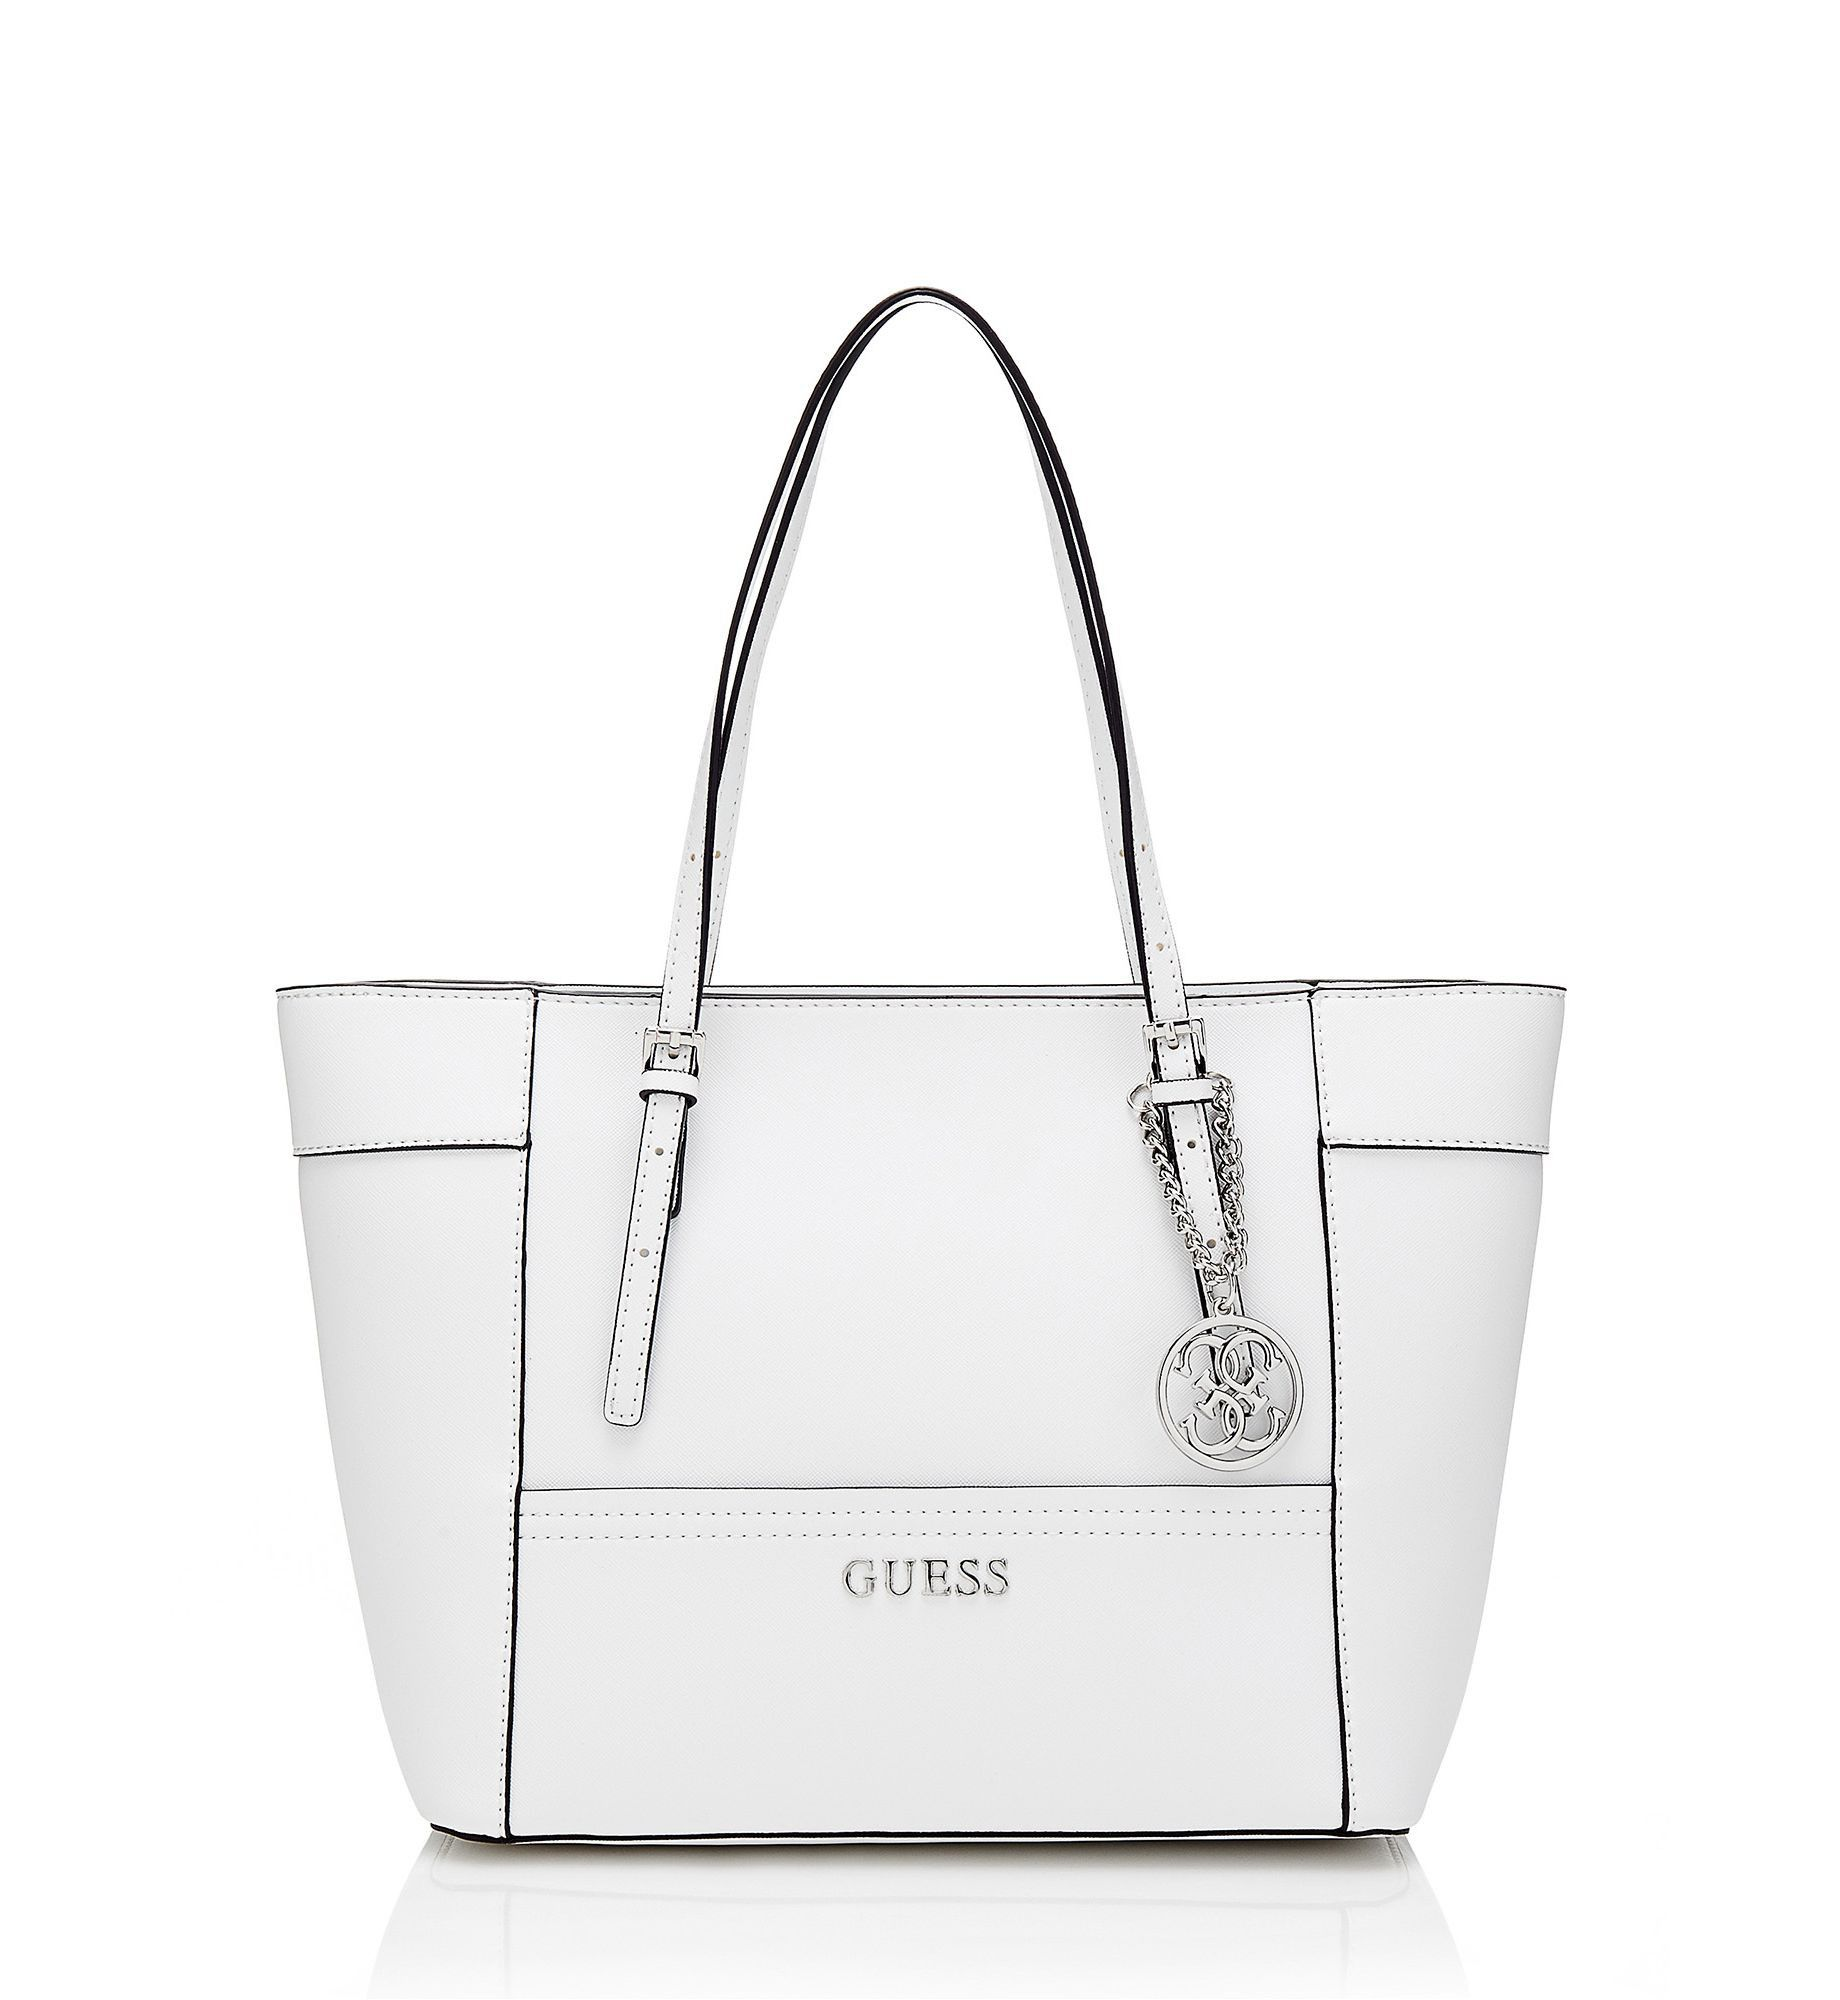 Pin by Fratinardi .it on GUESS BAGS - COLLECTION 2016  c739917e9c439